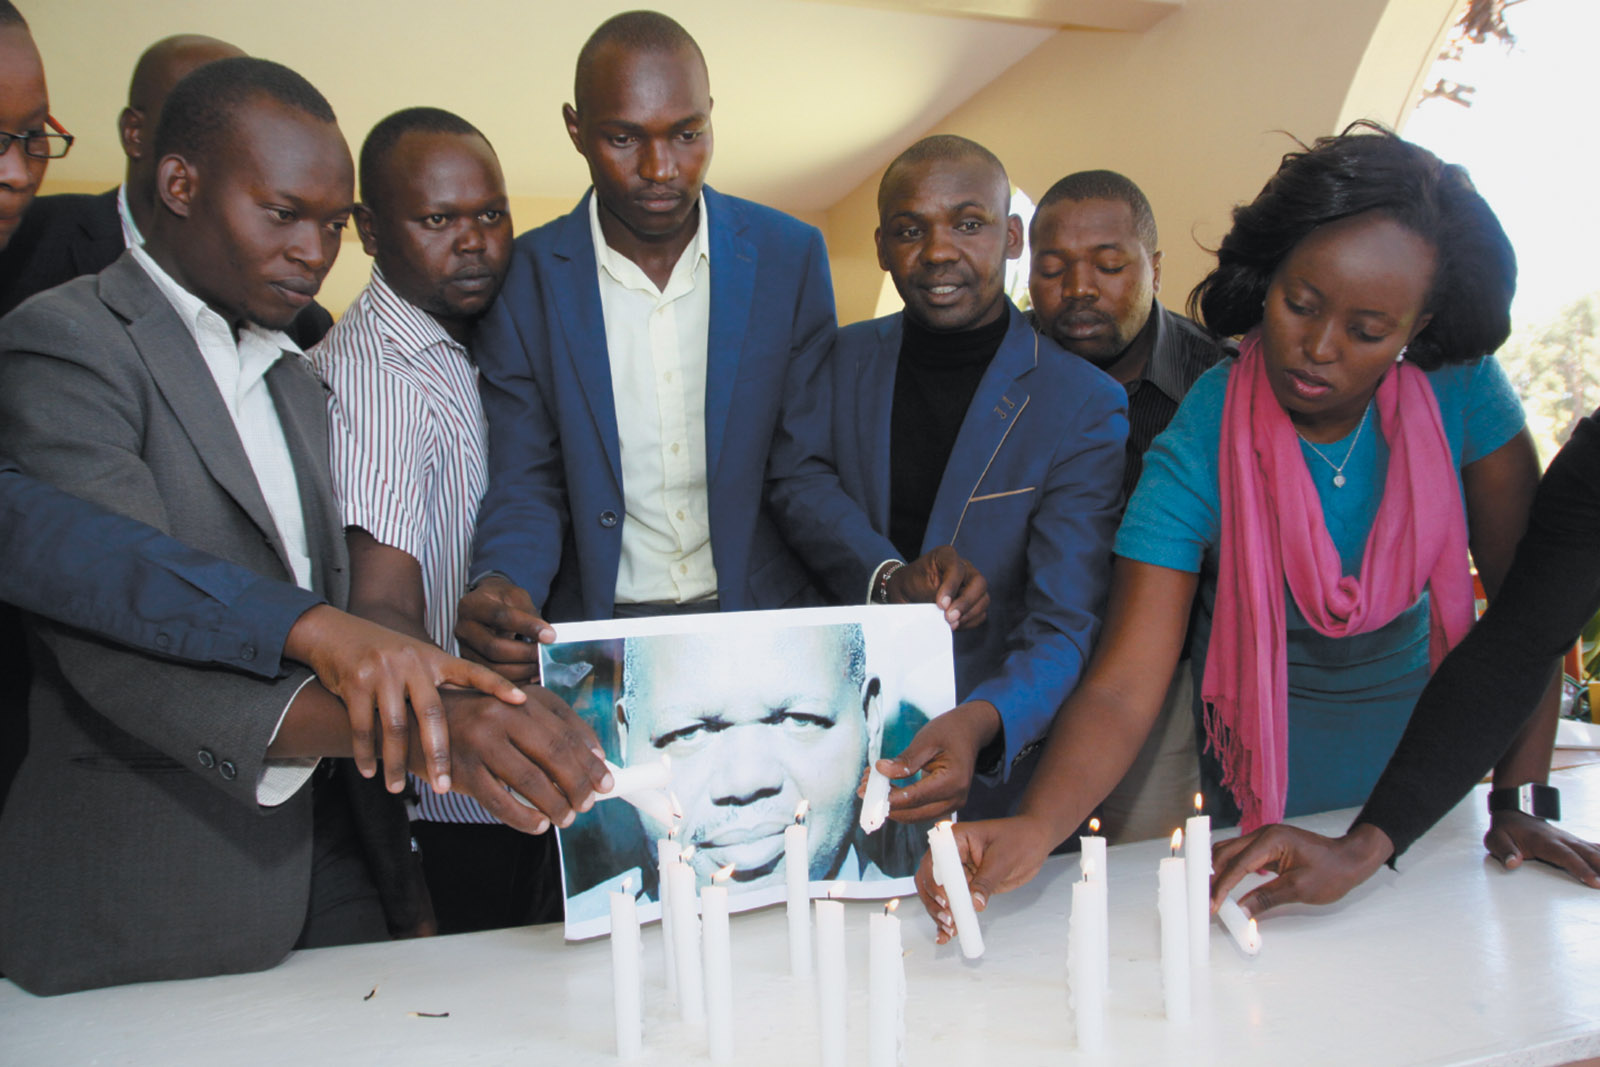 Journalists lighting candles in memory of newspaper editor John Kituyi on World Press Freedom Day, Eldoret, Kenya, May 2016. Kituyi was killed the year before while preparing to publish the results of an investigation that, according to Alan Rusbridger, 'could have embarrassed leading figures in Kenya's national government.'